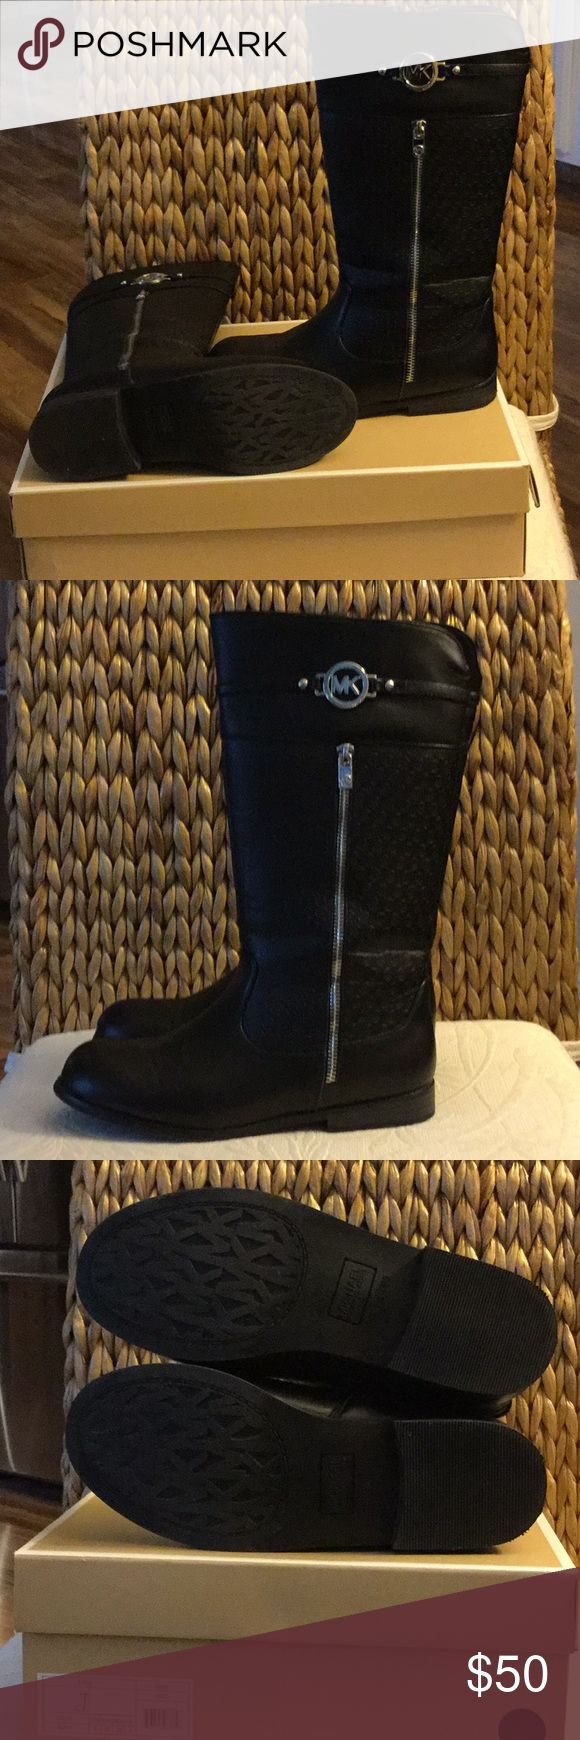 MK boots MK boots mid calf. Size 5 girls but, I am a size 7 woman and fit me perfect. Only worn a couple of times. Small scuffs on inside of each boot as shon in pic #4 Michael Kors Shoes Heeled Boots